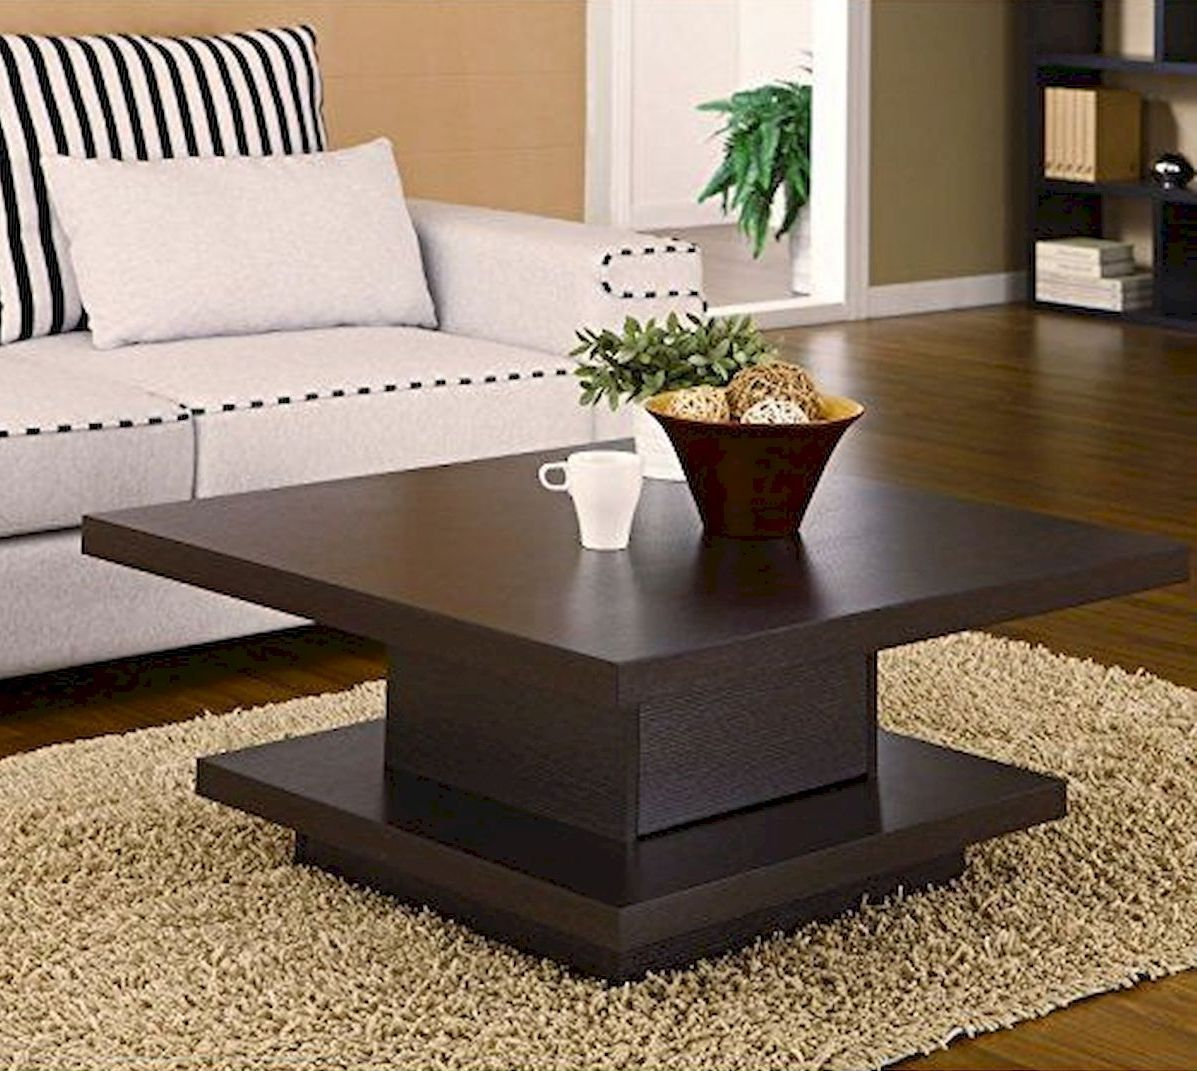 Meuble Africain Design Coffe Table En 2019 Deco Coffee Table Design Center Table